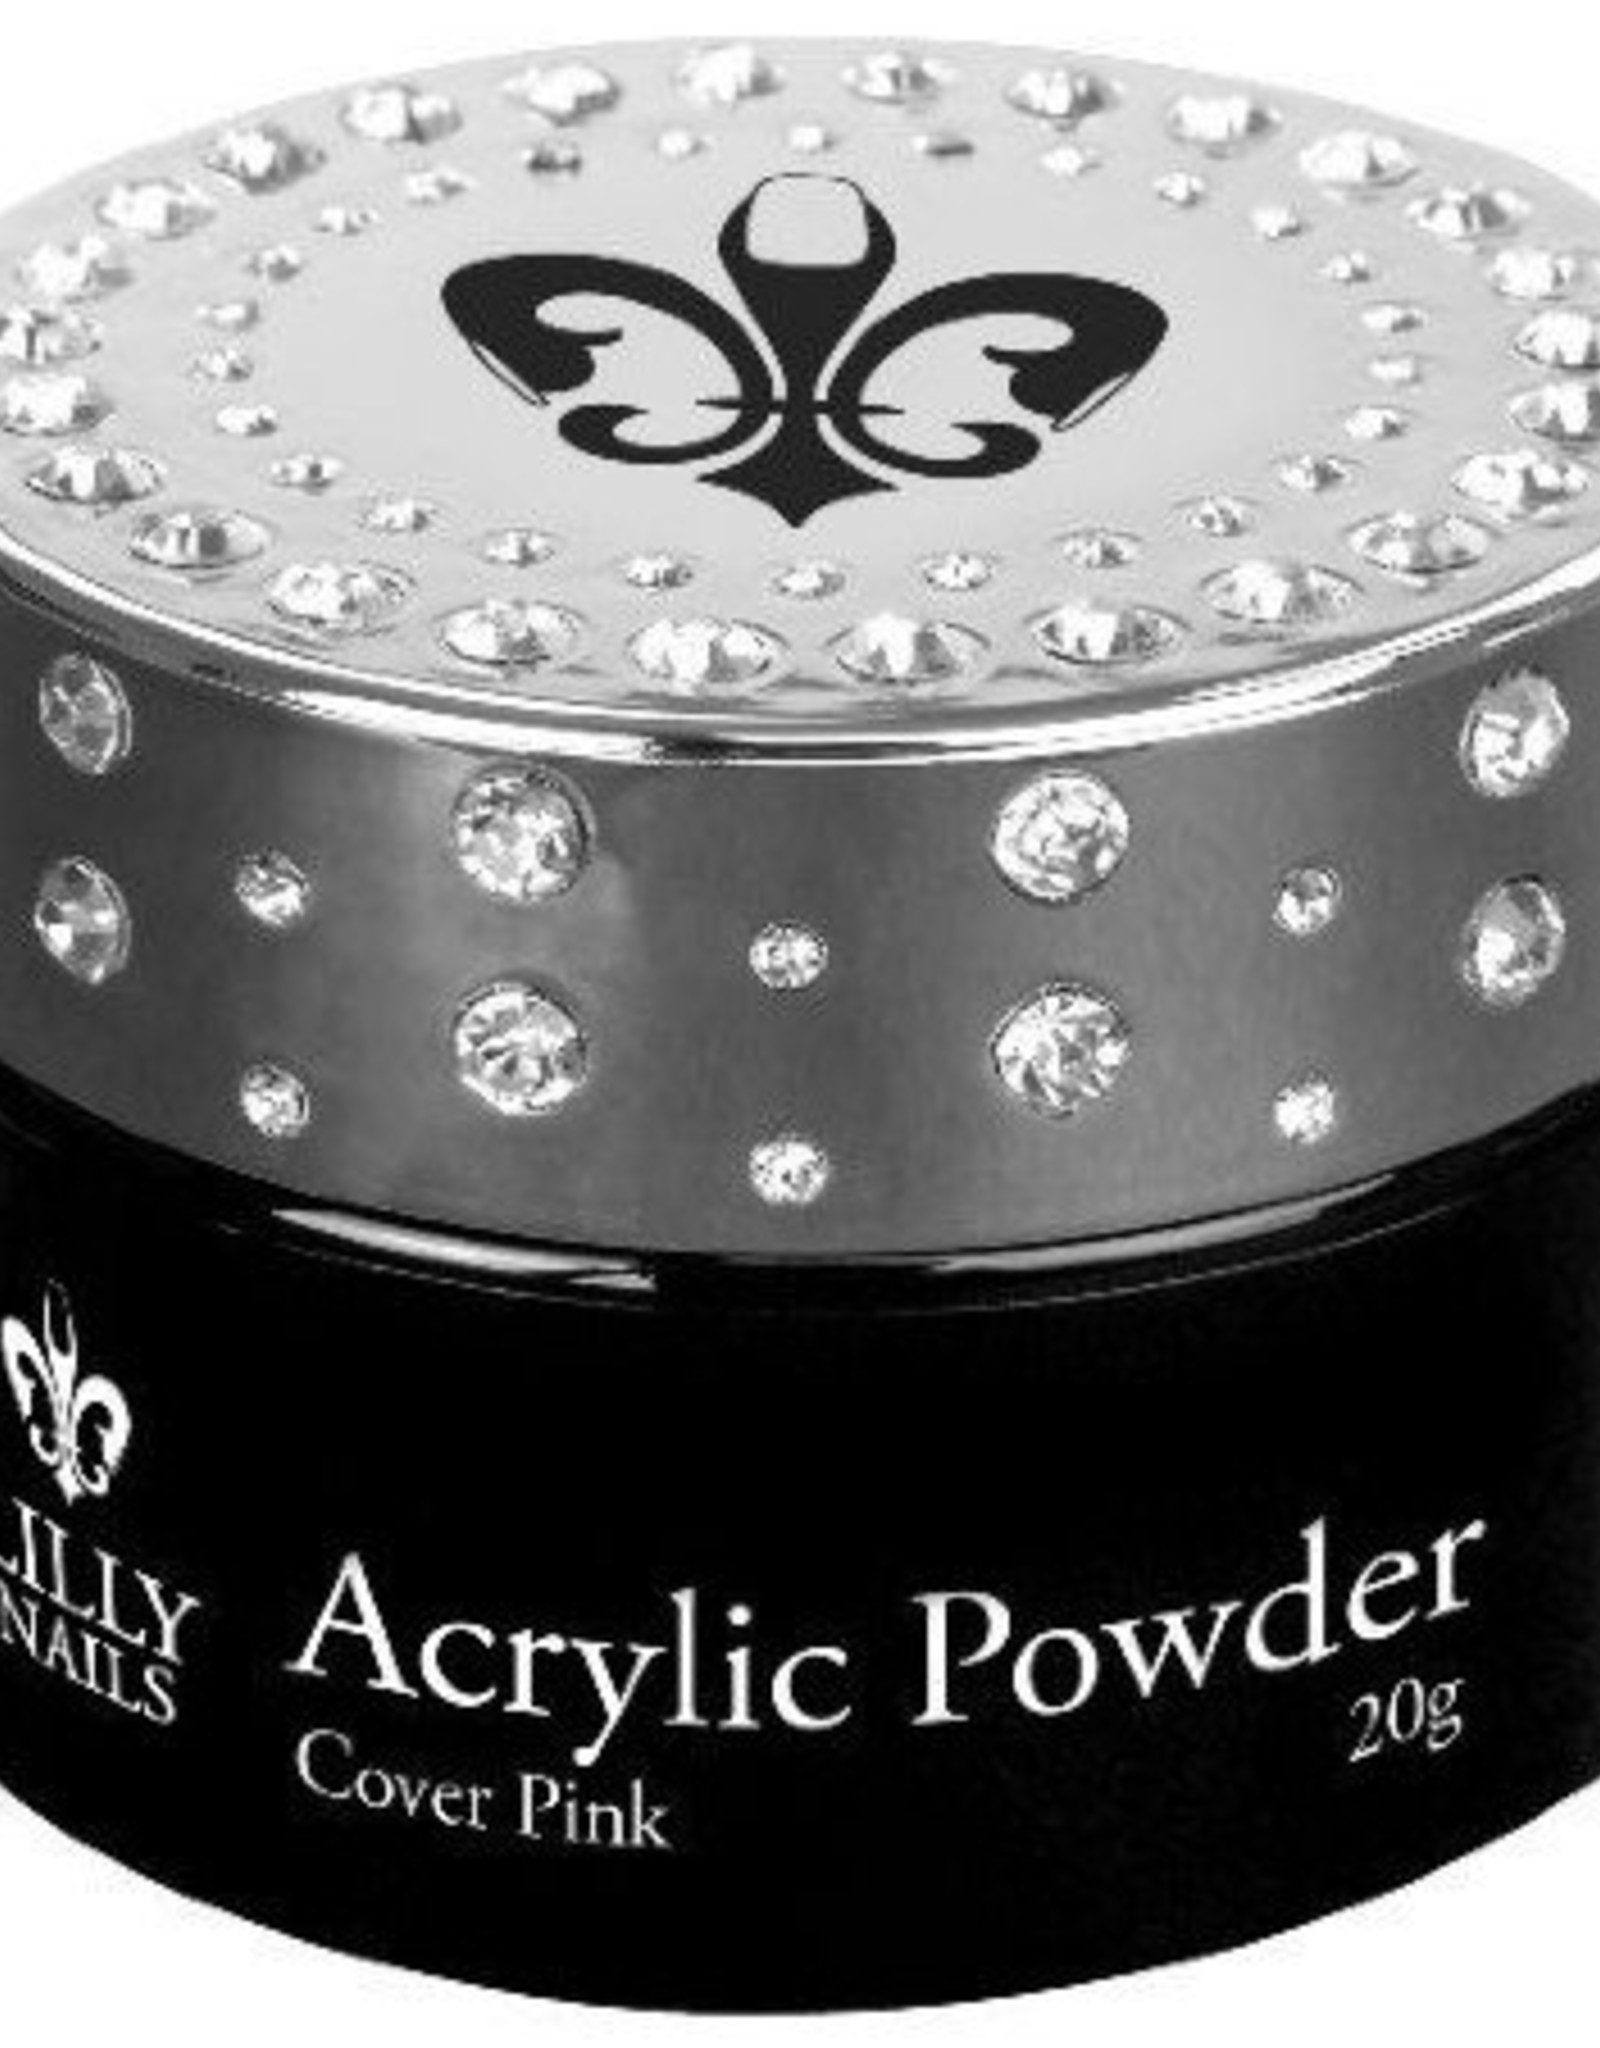 Acrylic Powder Cover Pink